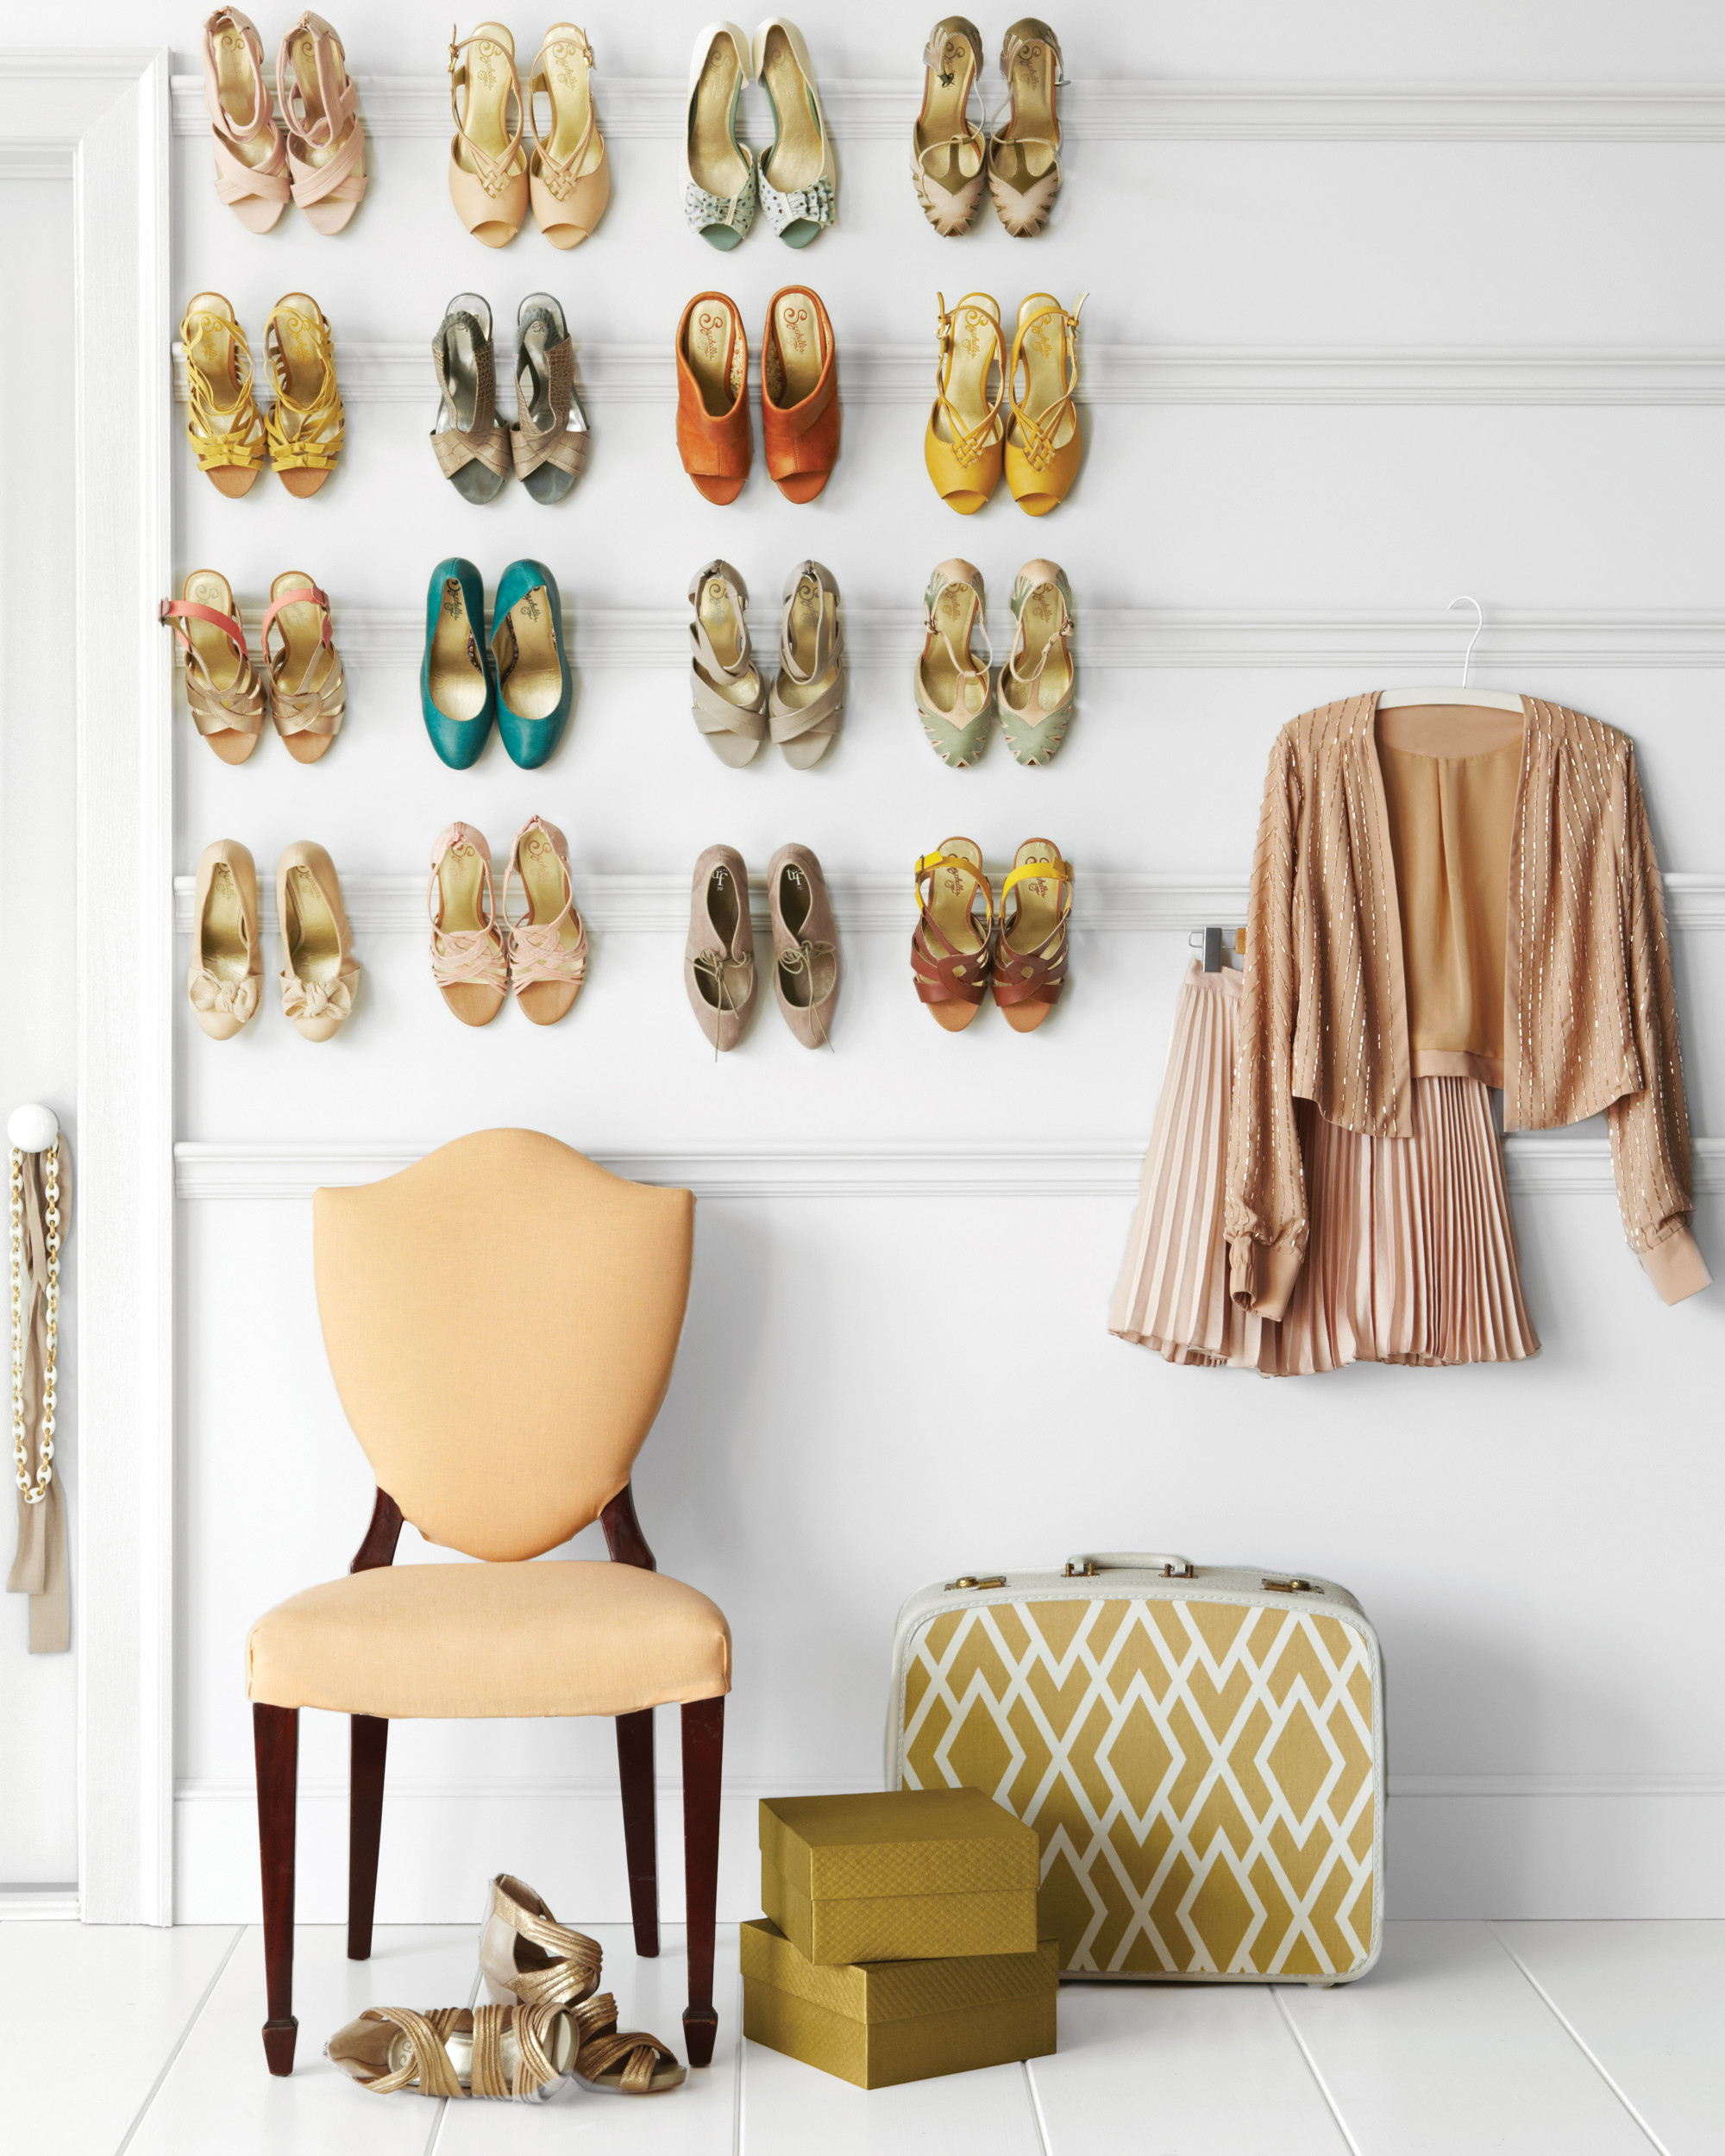 Picture Rail Shoe Rack